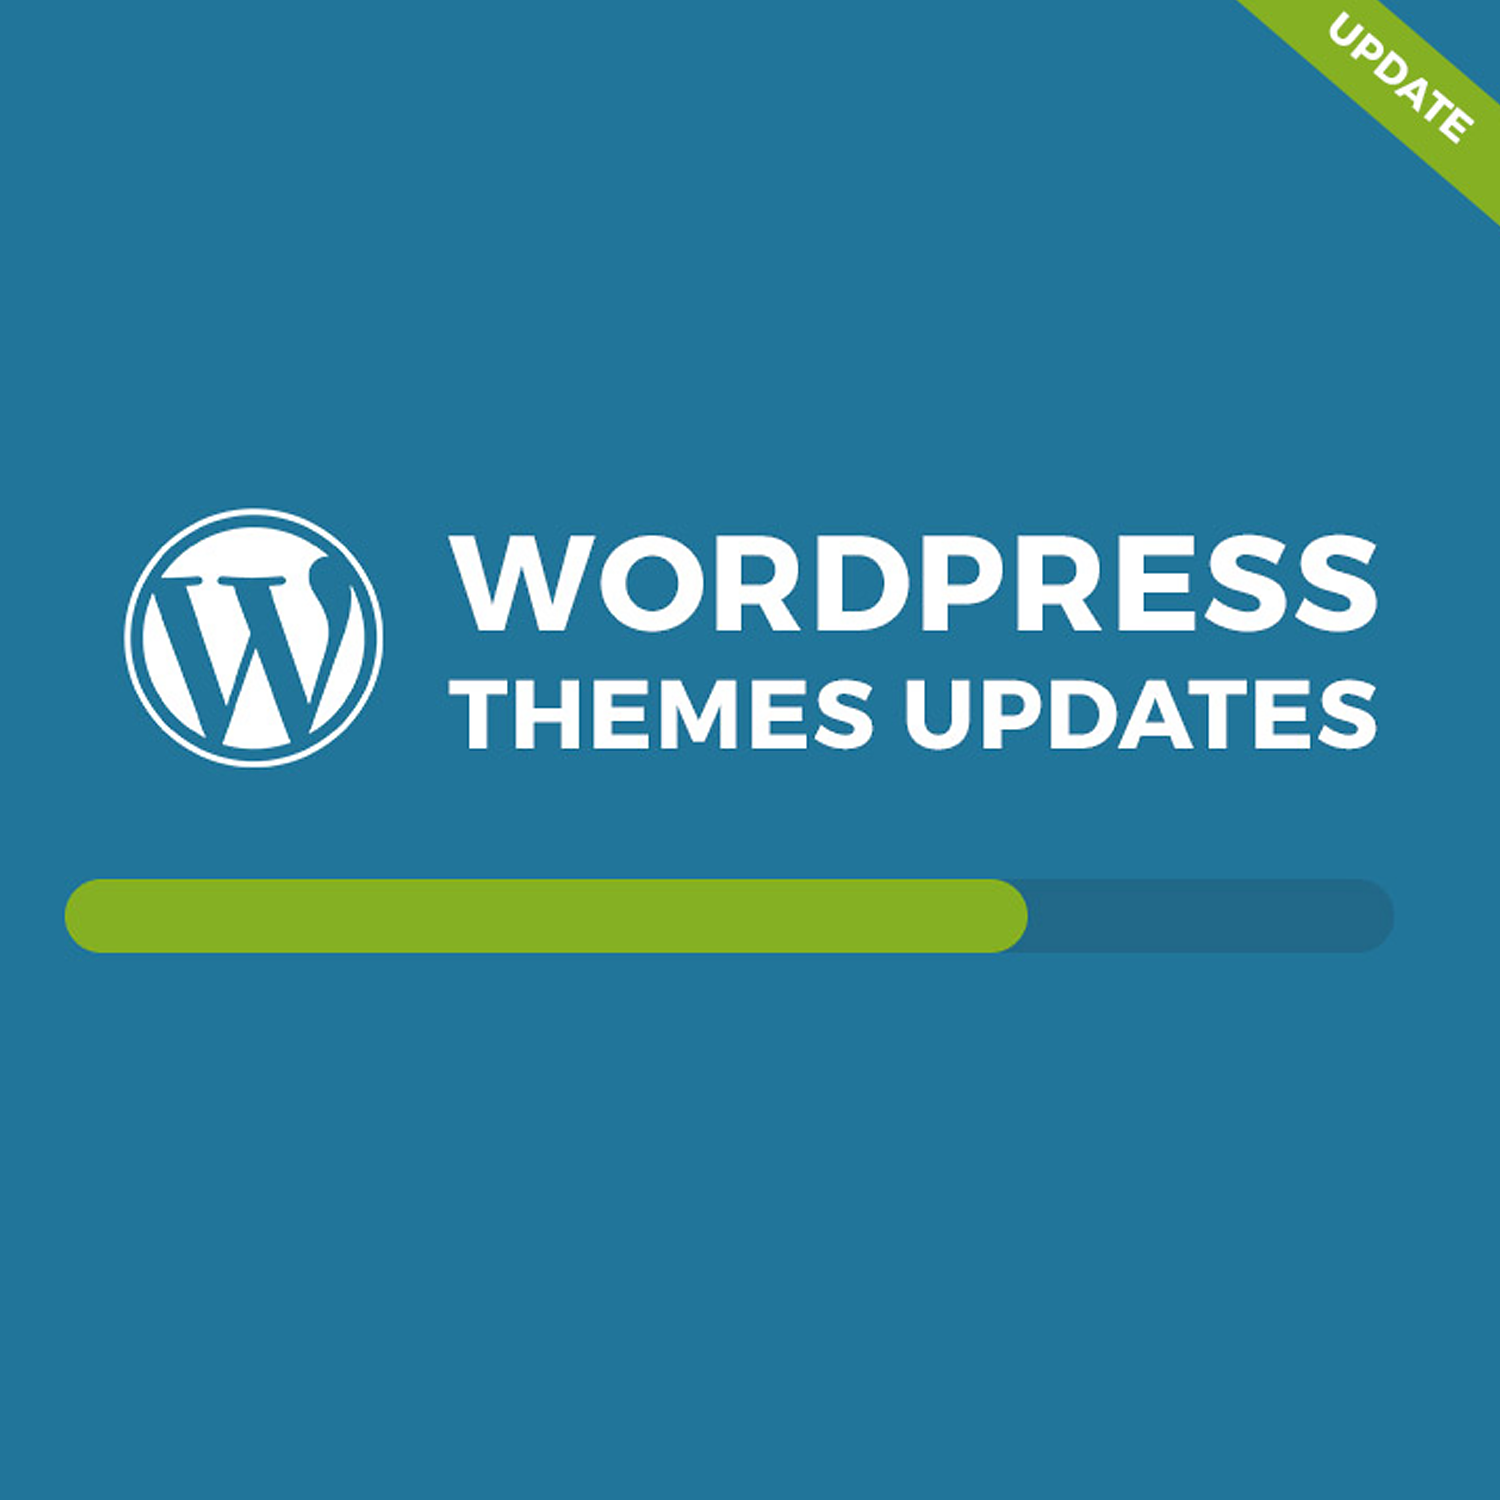 PixelEmu Wordpress News: WordPress themes Update!